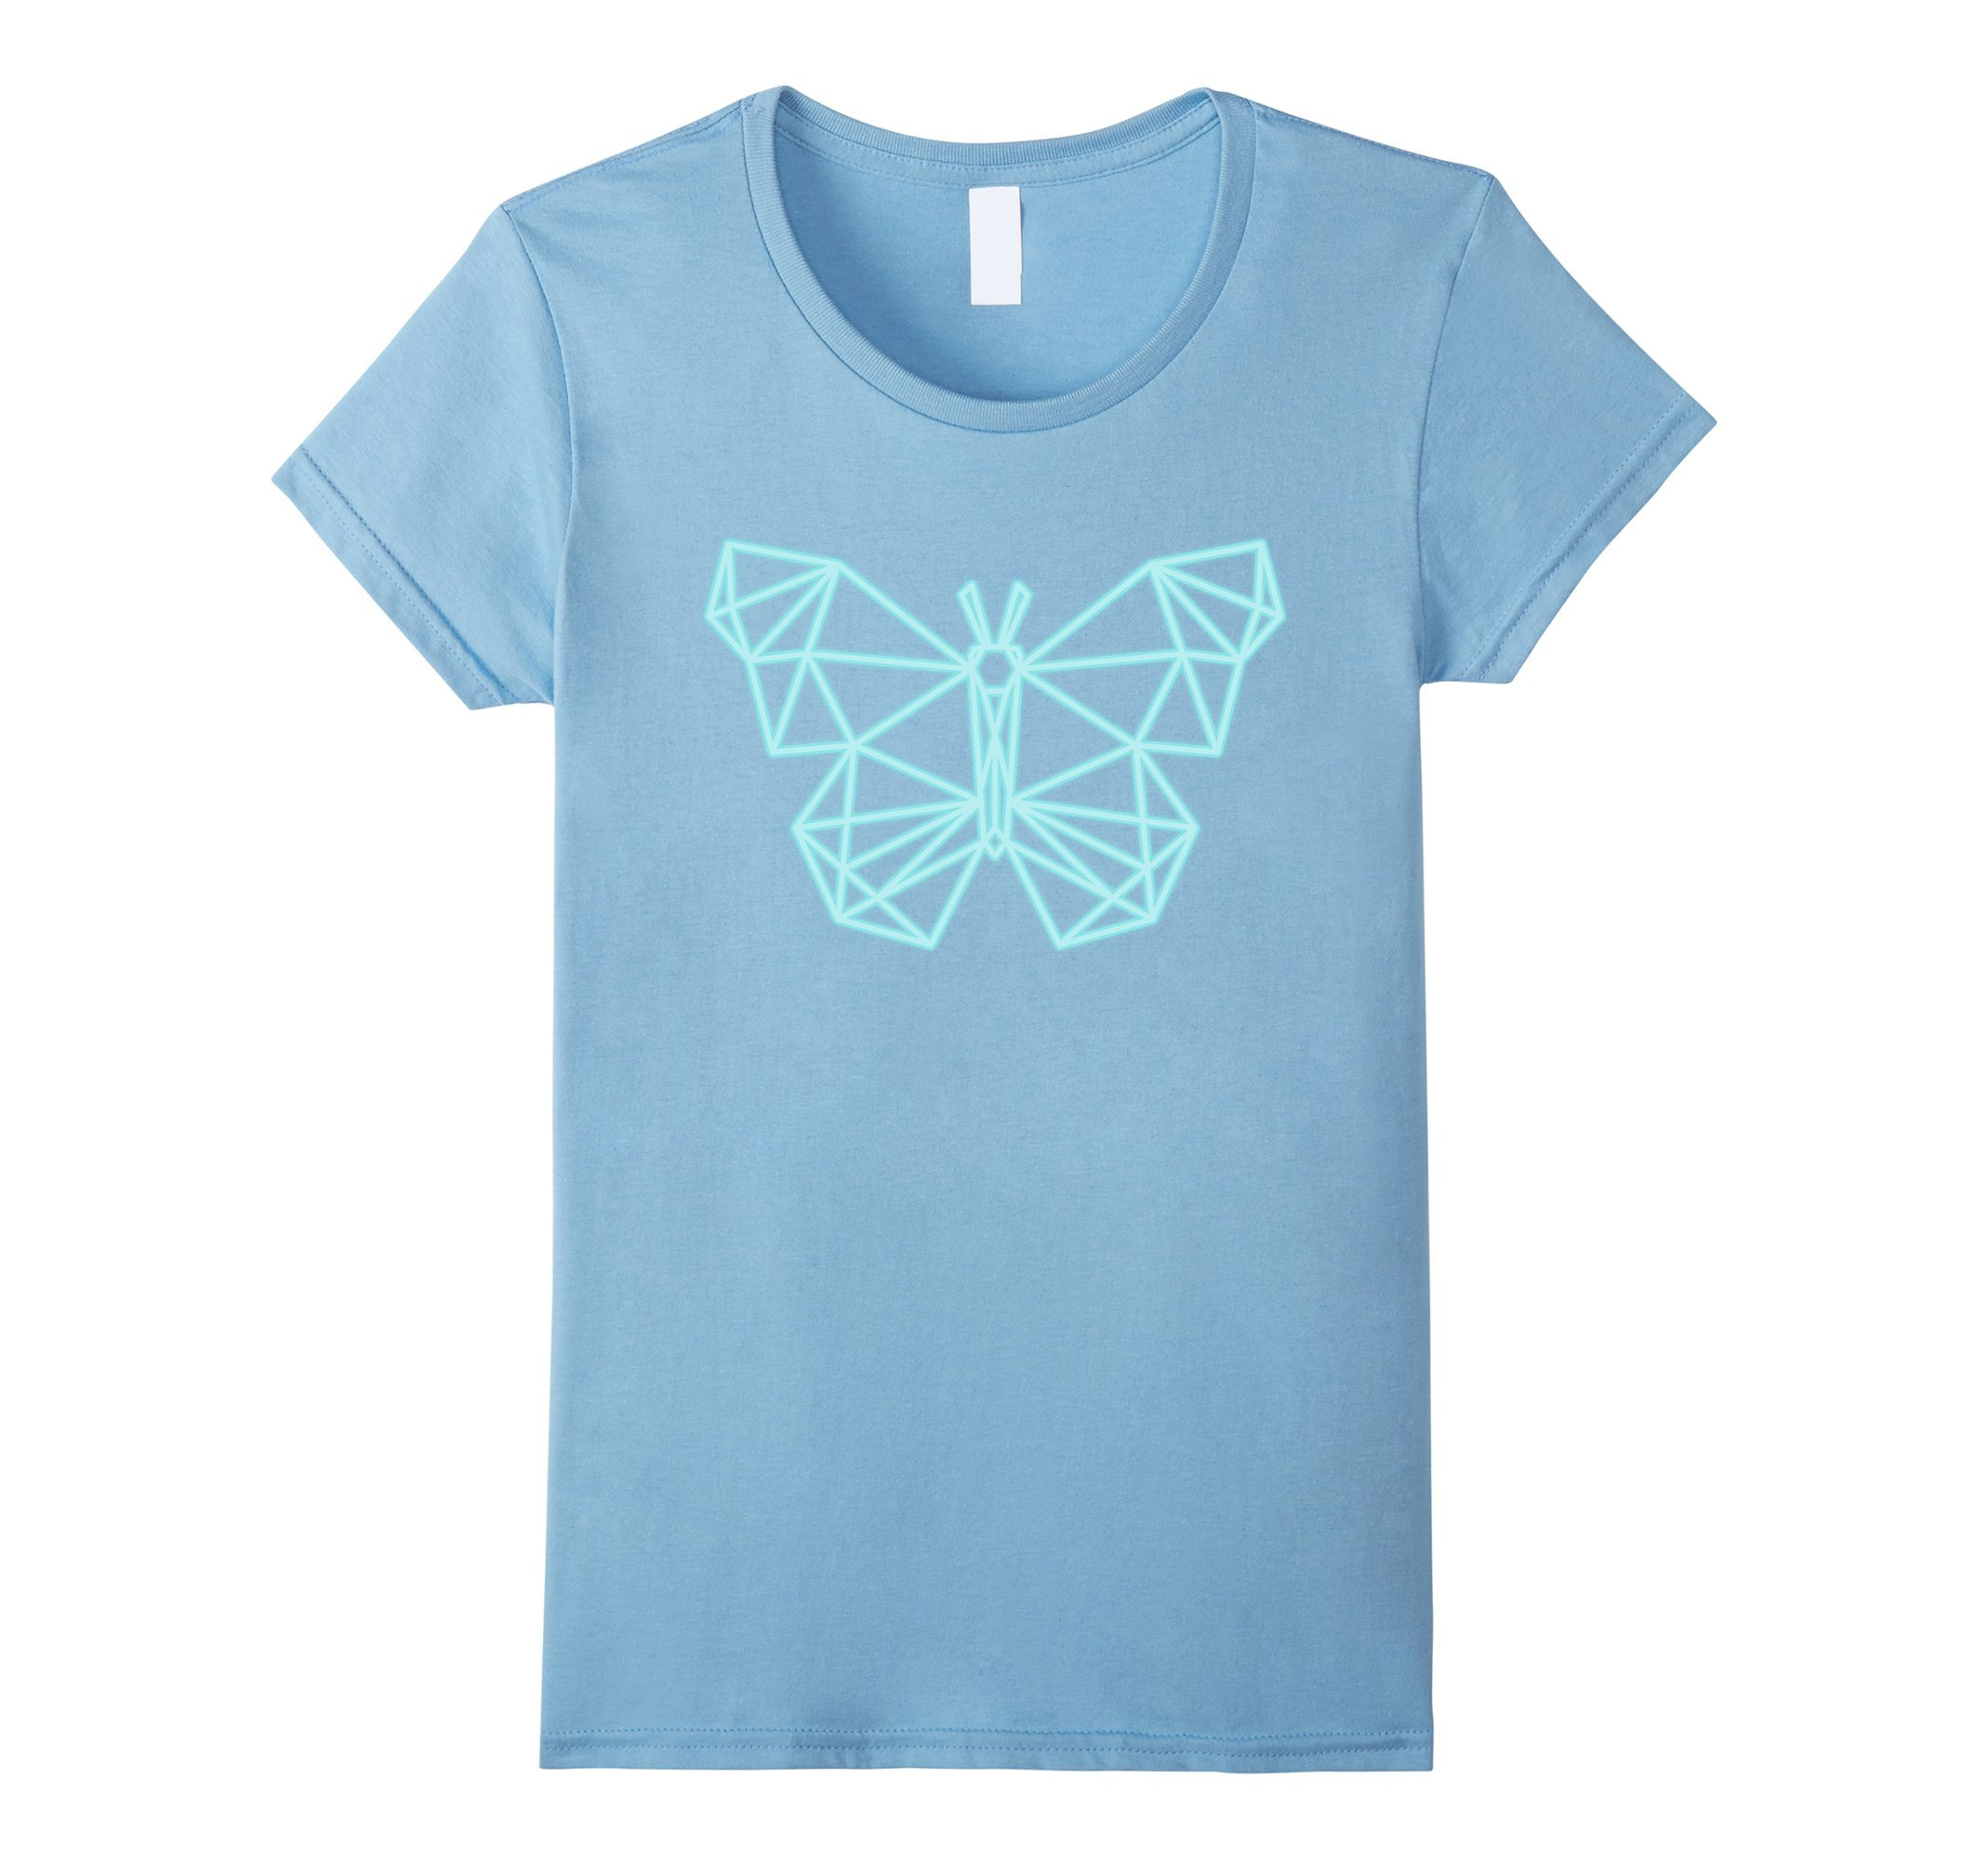 Womens 80s Retro Neon Sign Butterfly Geometric T-Shirt. 80's Gift Small Baby Blue